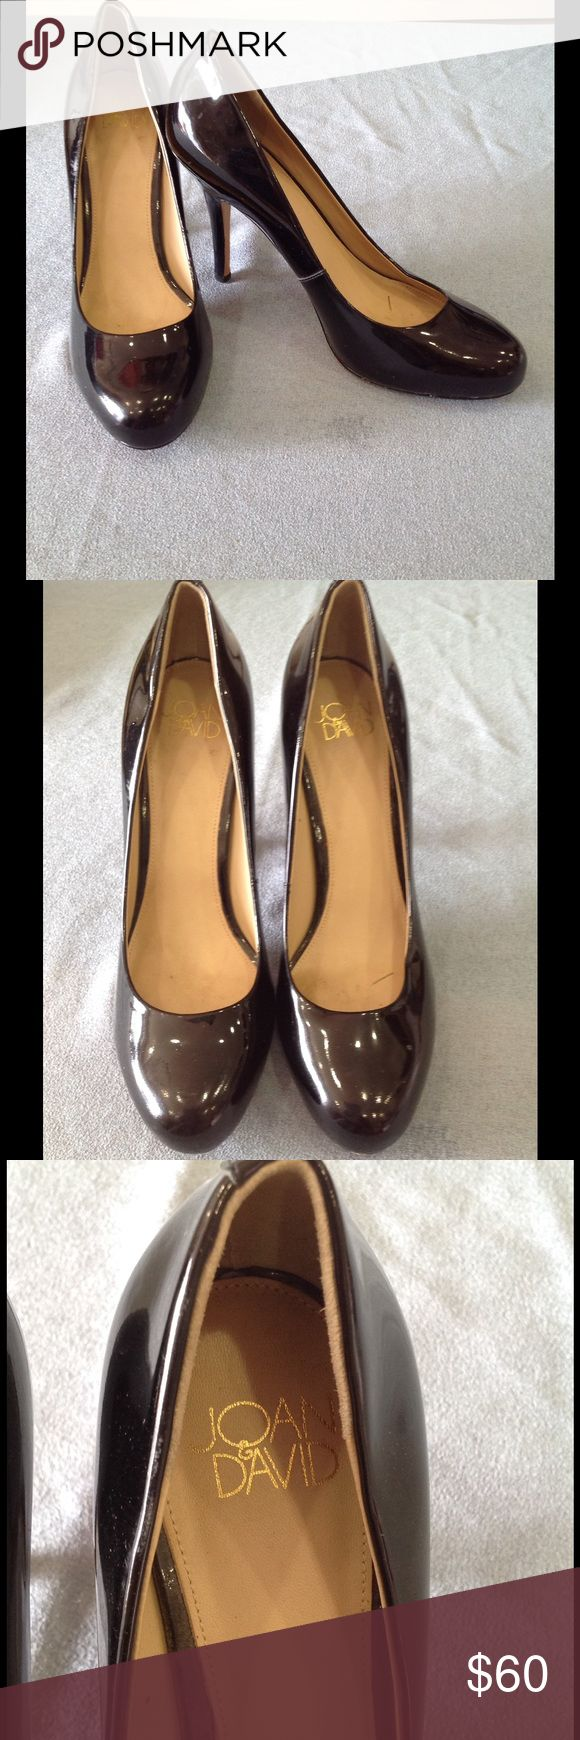 Joan & David Black Shiny Classic Pumps Size 6.5 These are classic shiny black pumps that can easily be dressed up or down! Little to no wear on the bottom of the shoes! Joan & David Shoes Heels